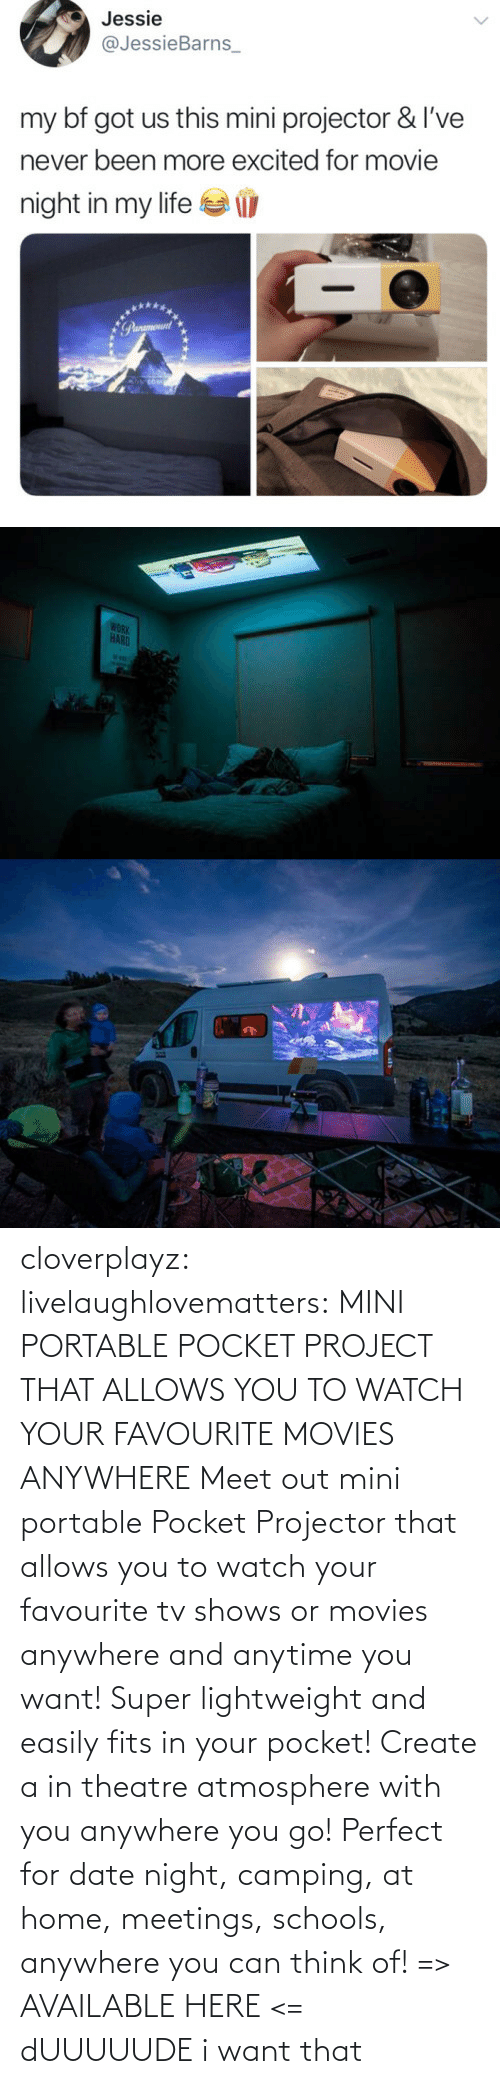 You Go: cloverplayz: livelaughlovematters:  MINI PORTABLE POCKET PROJECT THAT ALLOWS YOU TO WATCH YOUR FAVOURITE MOVIES ANYWHERE Meet out mini portable Pocket Projector that allows you to watch your favourite tv shows or movies anywhere and anytime you want! Super lightweight and easily fits in your pocket! Create a in theatre atmosphere with you anywhere you go! Perfect for date night, camping, at home, meetings, schools, anywhere you can think of! => AVAILABLE HERE <=  dUUUUUDE i want that